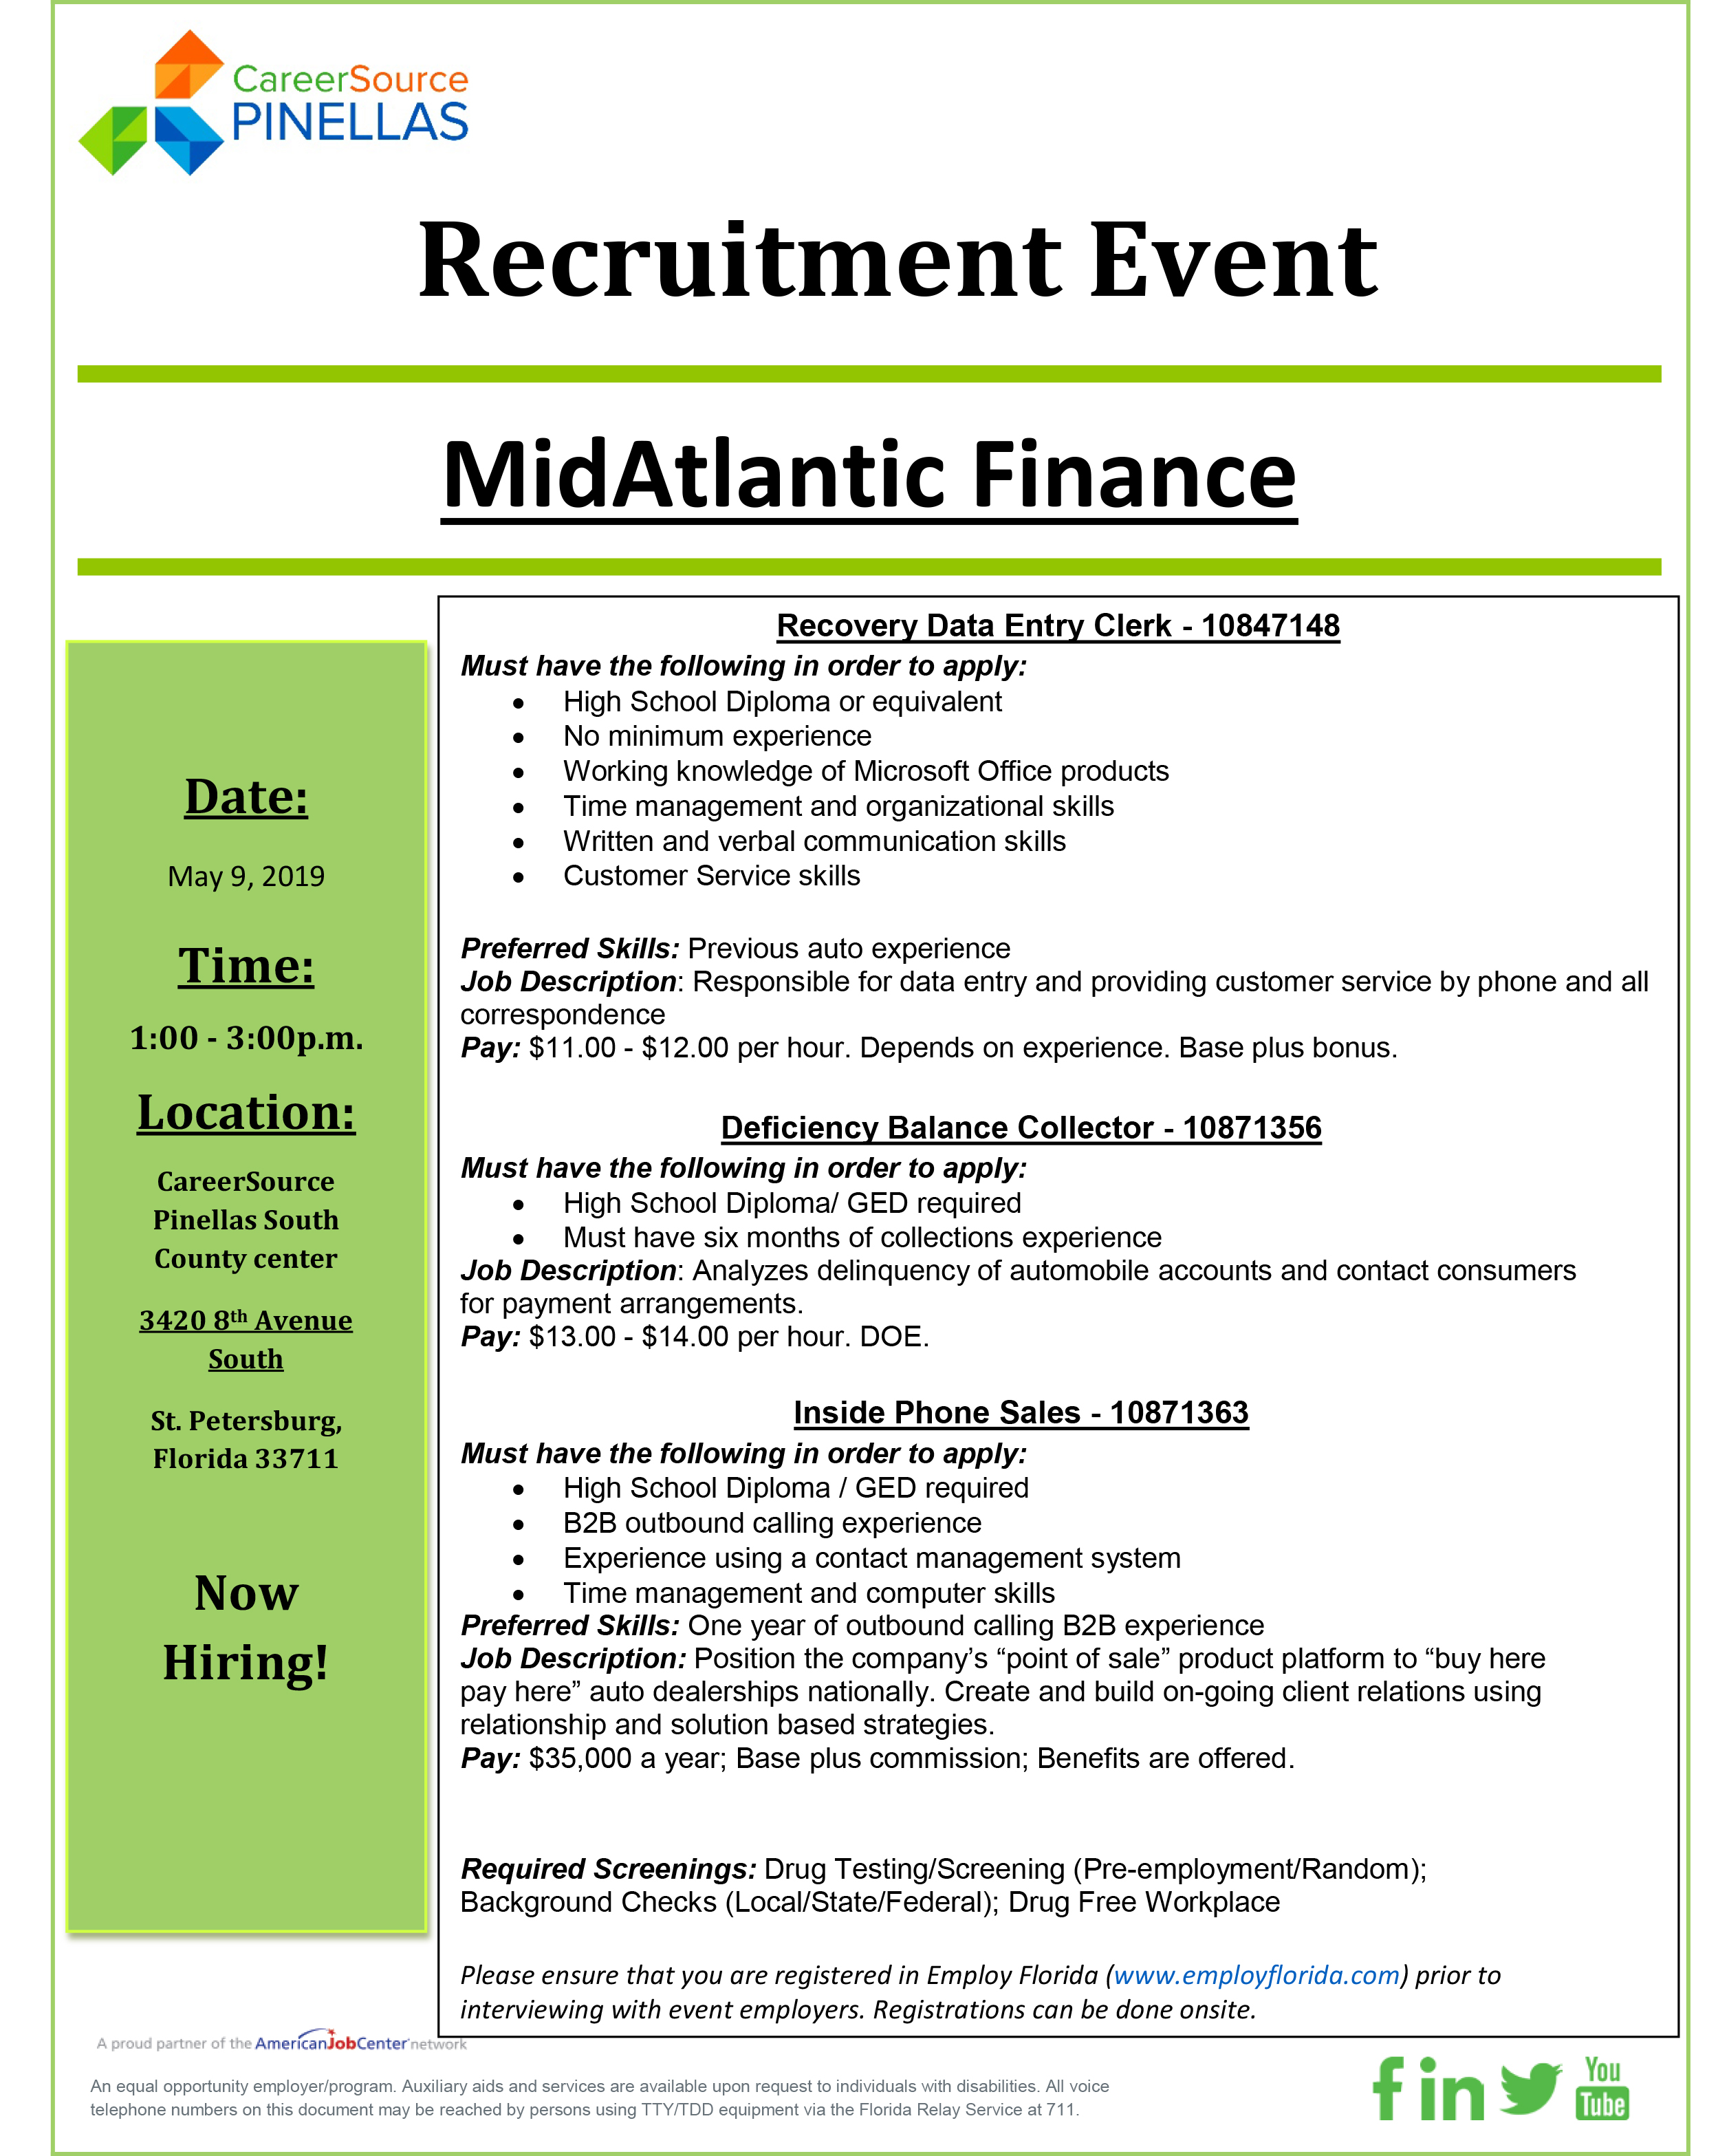 MidAtlantic Finance 5-9.jpg